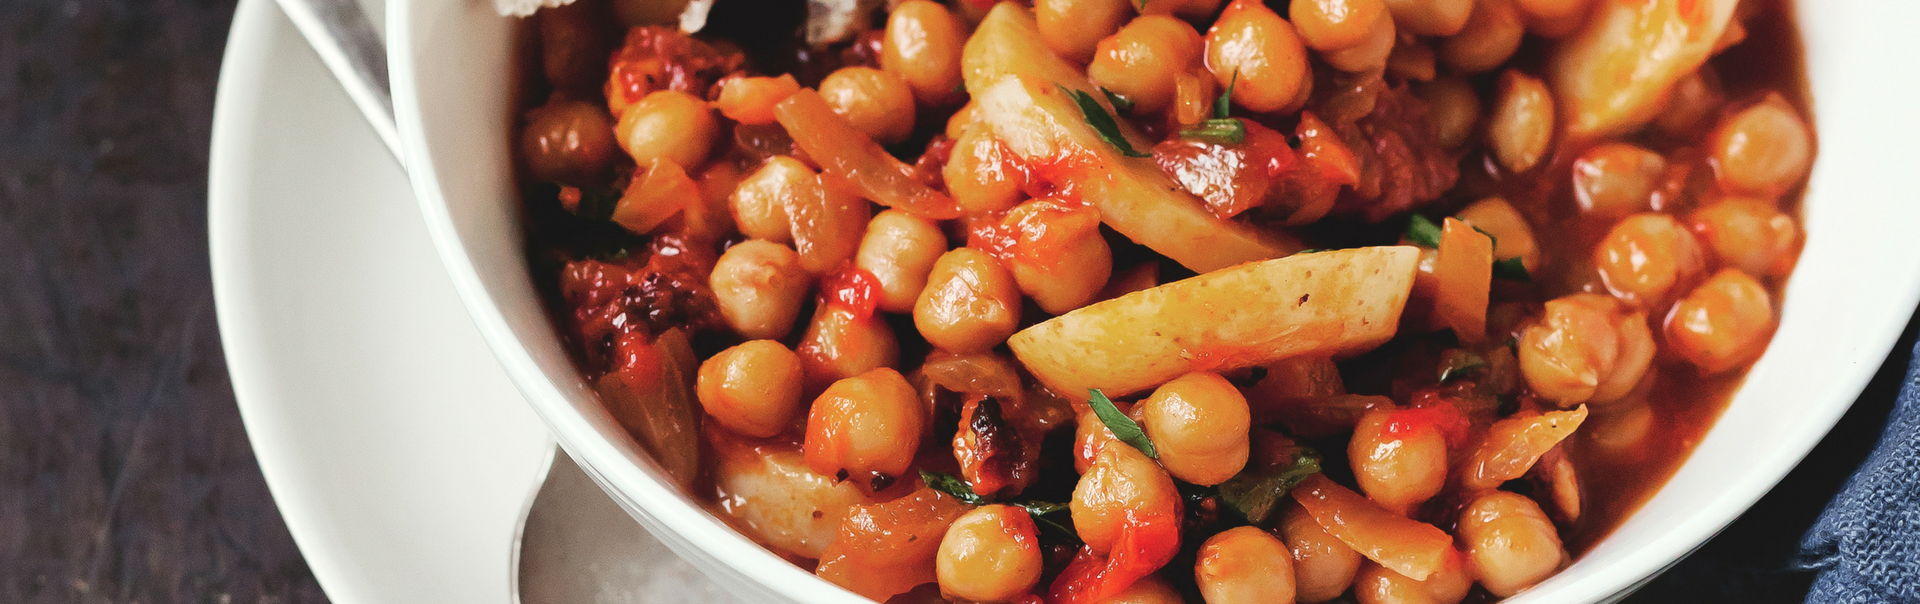 Chickpea and bean casserole